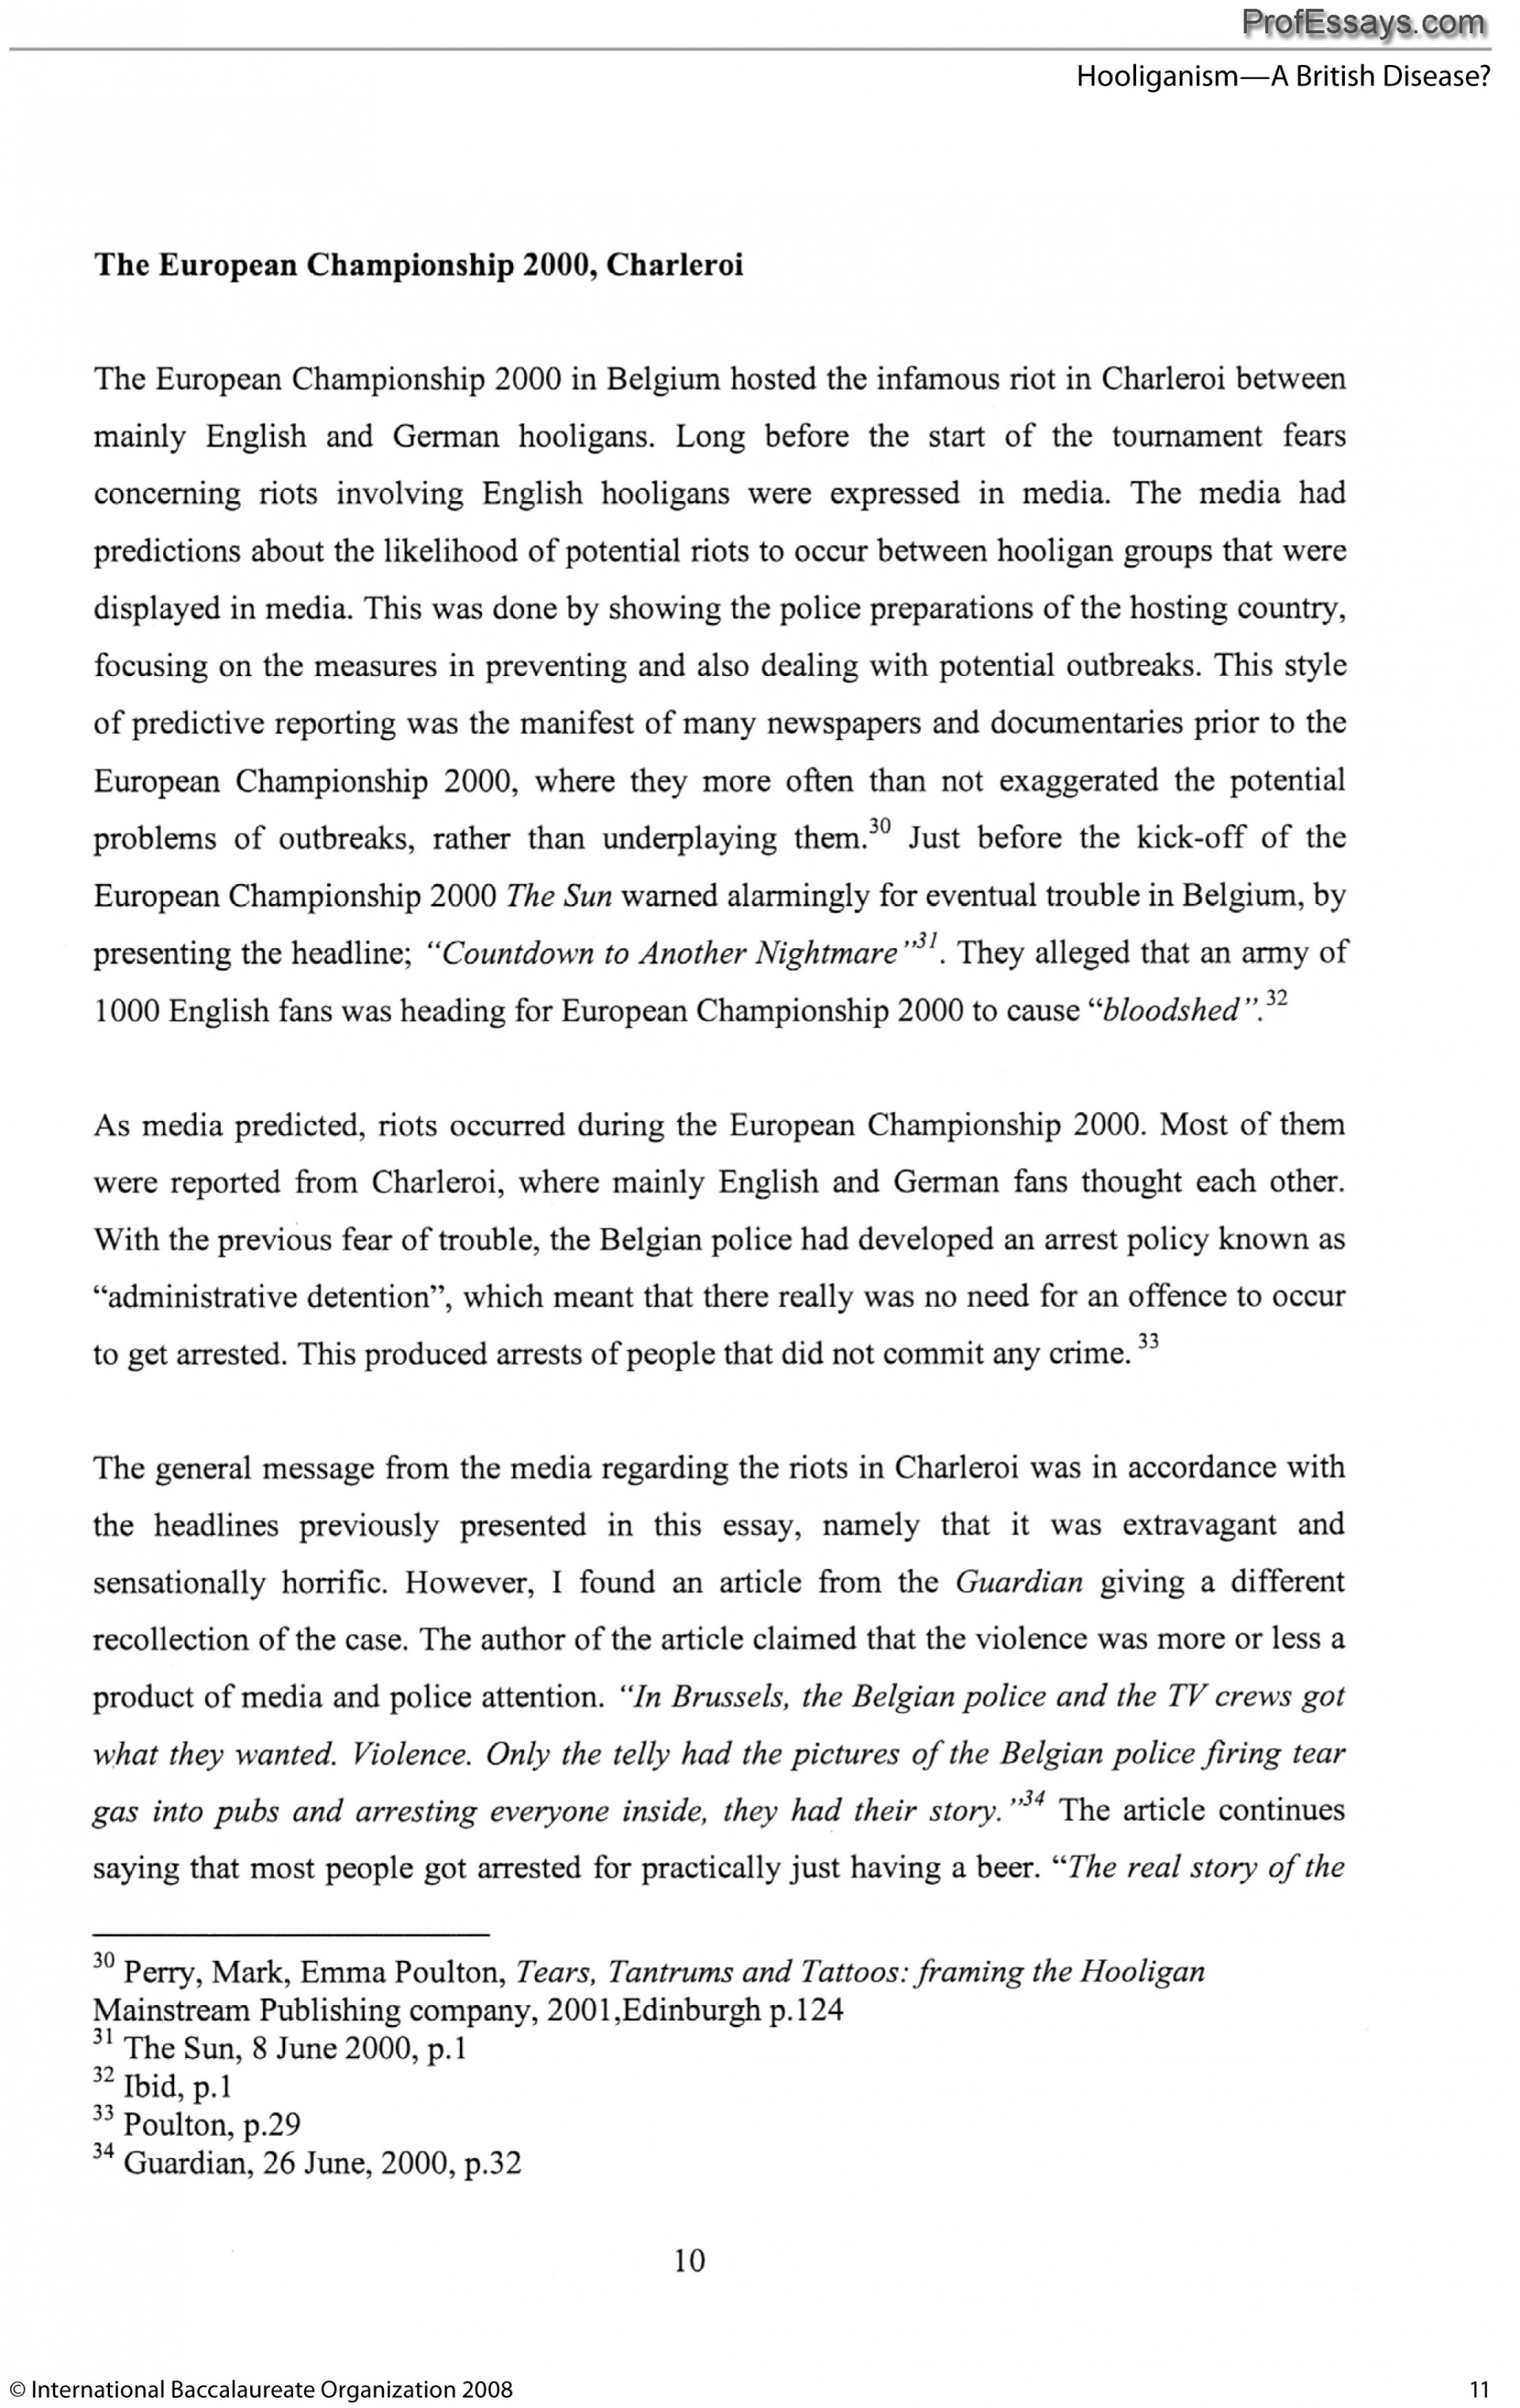 005 Art Essay Examples Example Ib Extended Free Formidable Conclusion School A2 1920